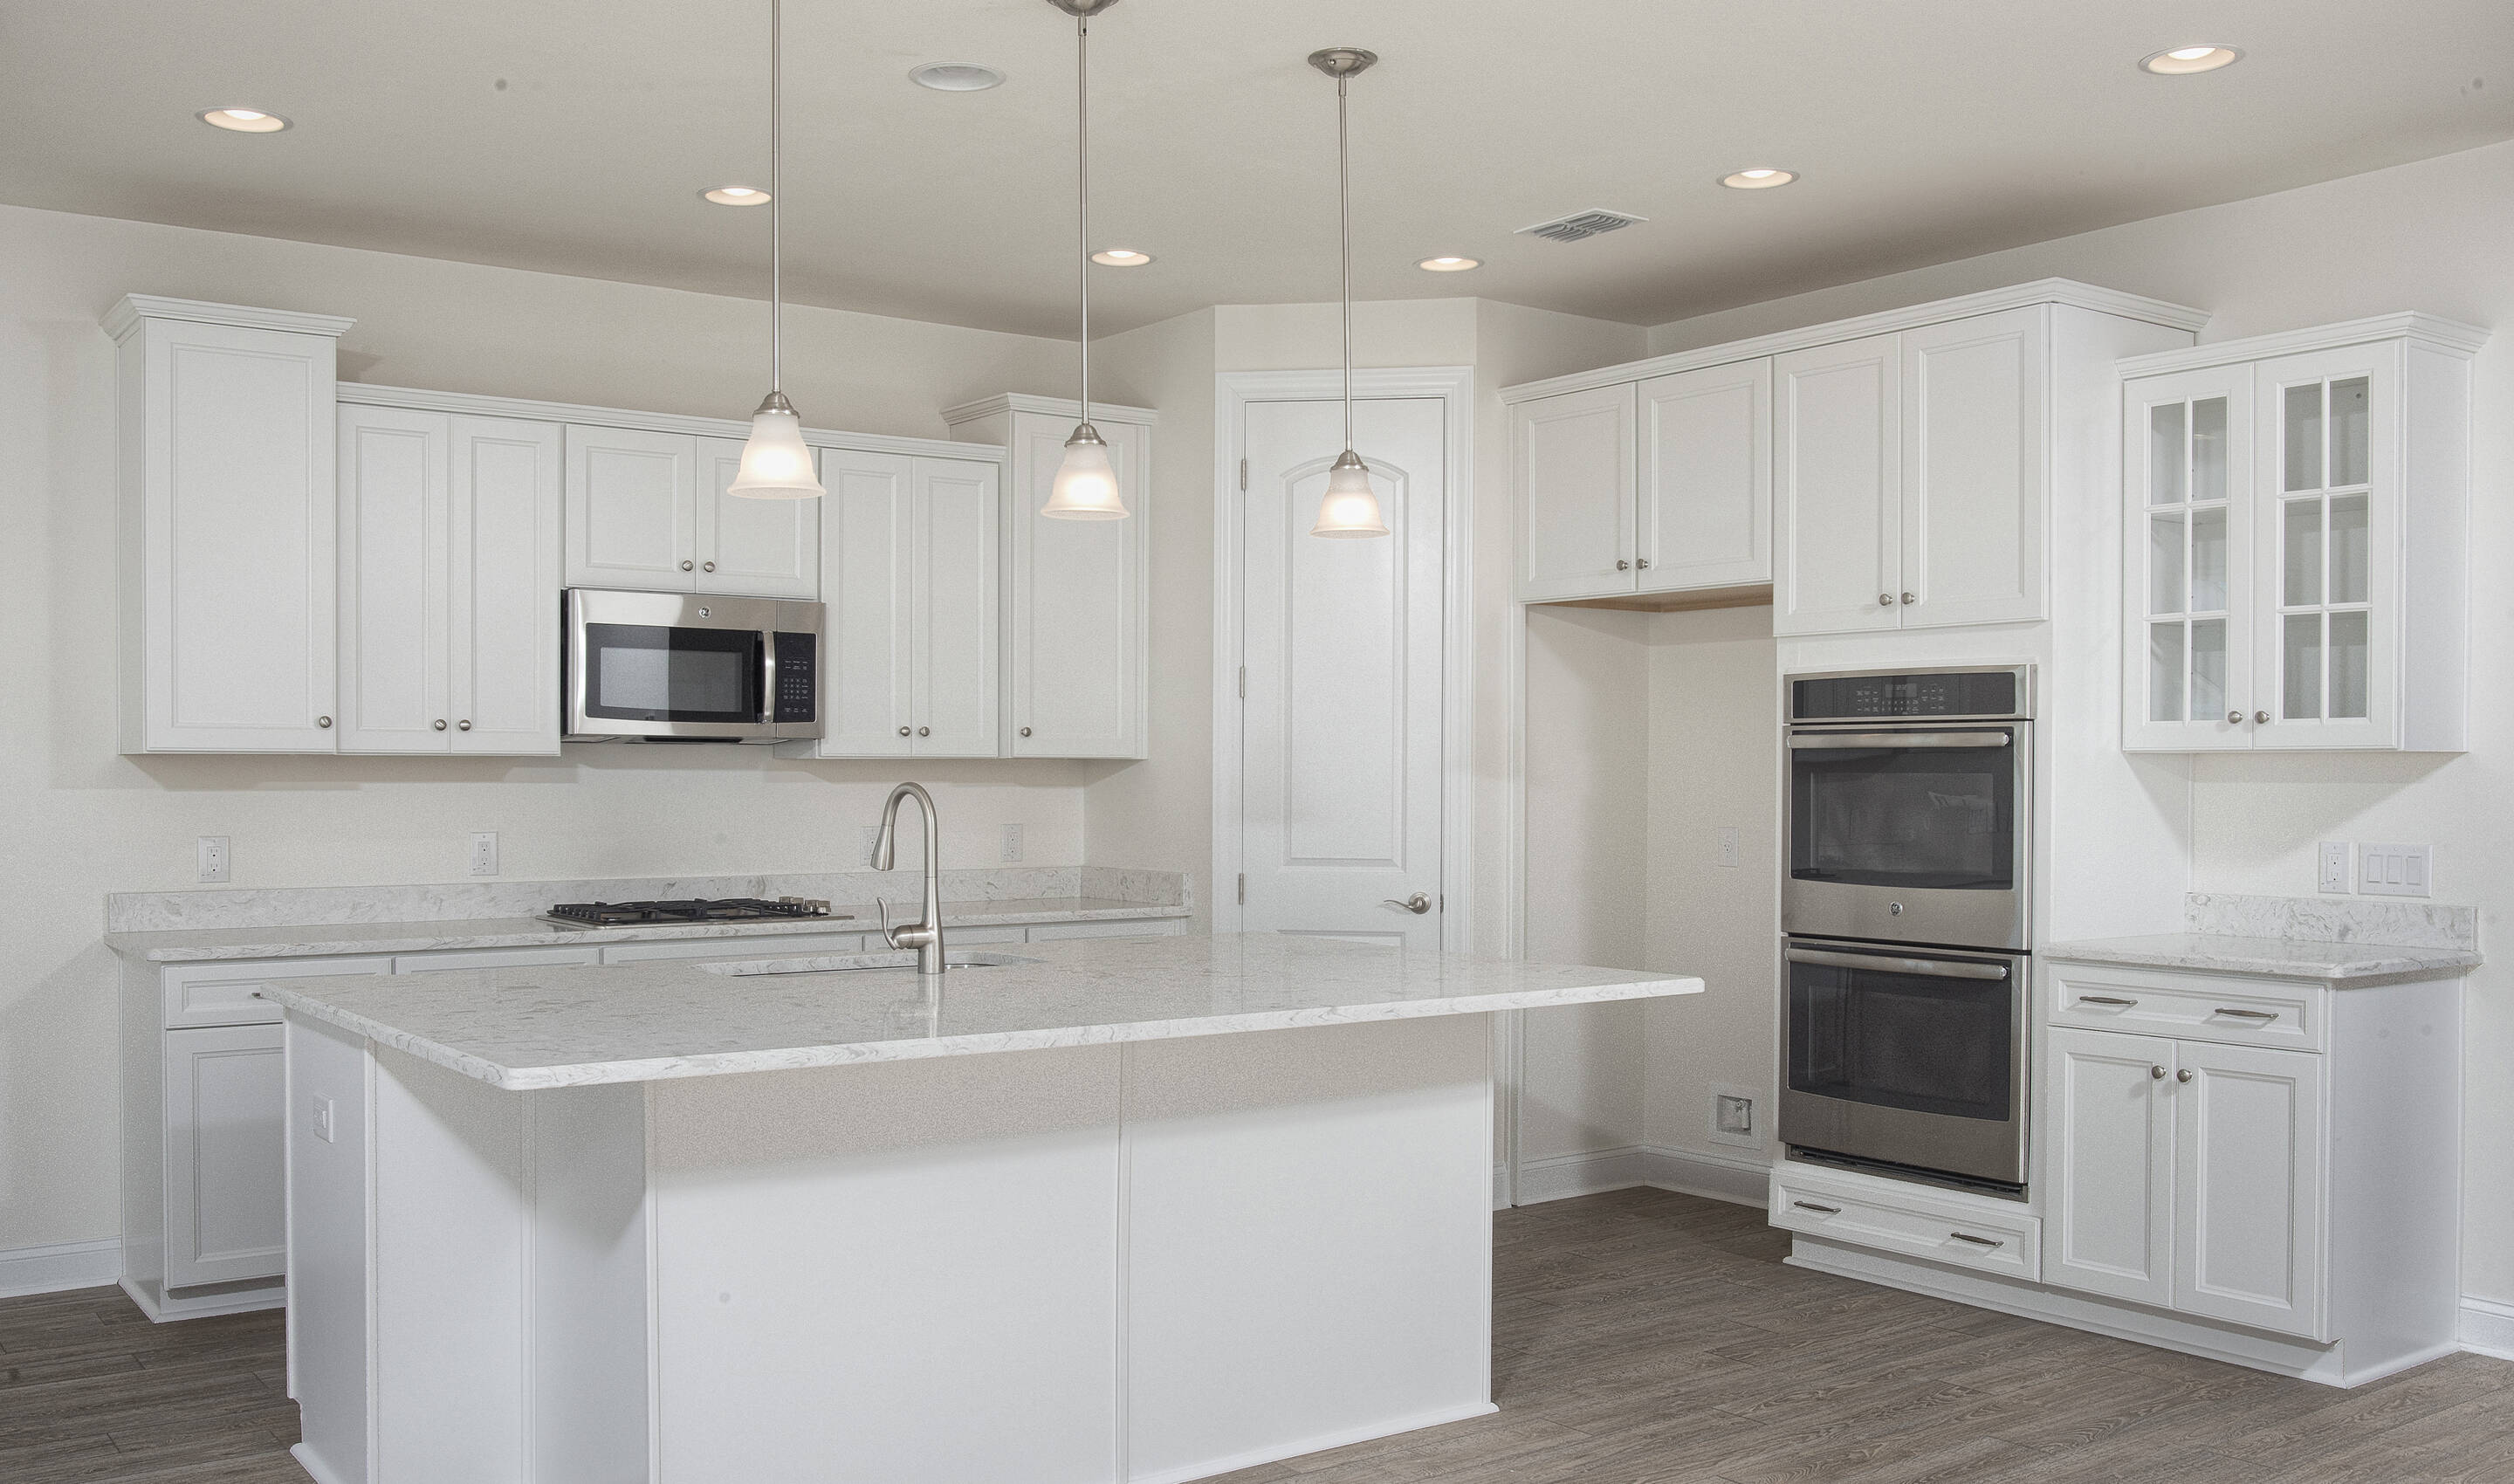 kitchen dorchester 544 lot 202 new homes at cane bay